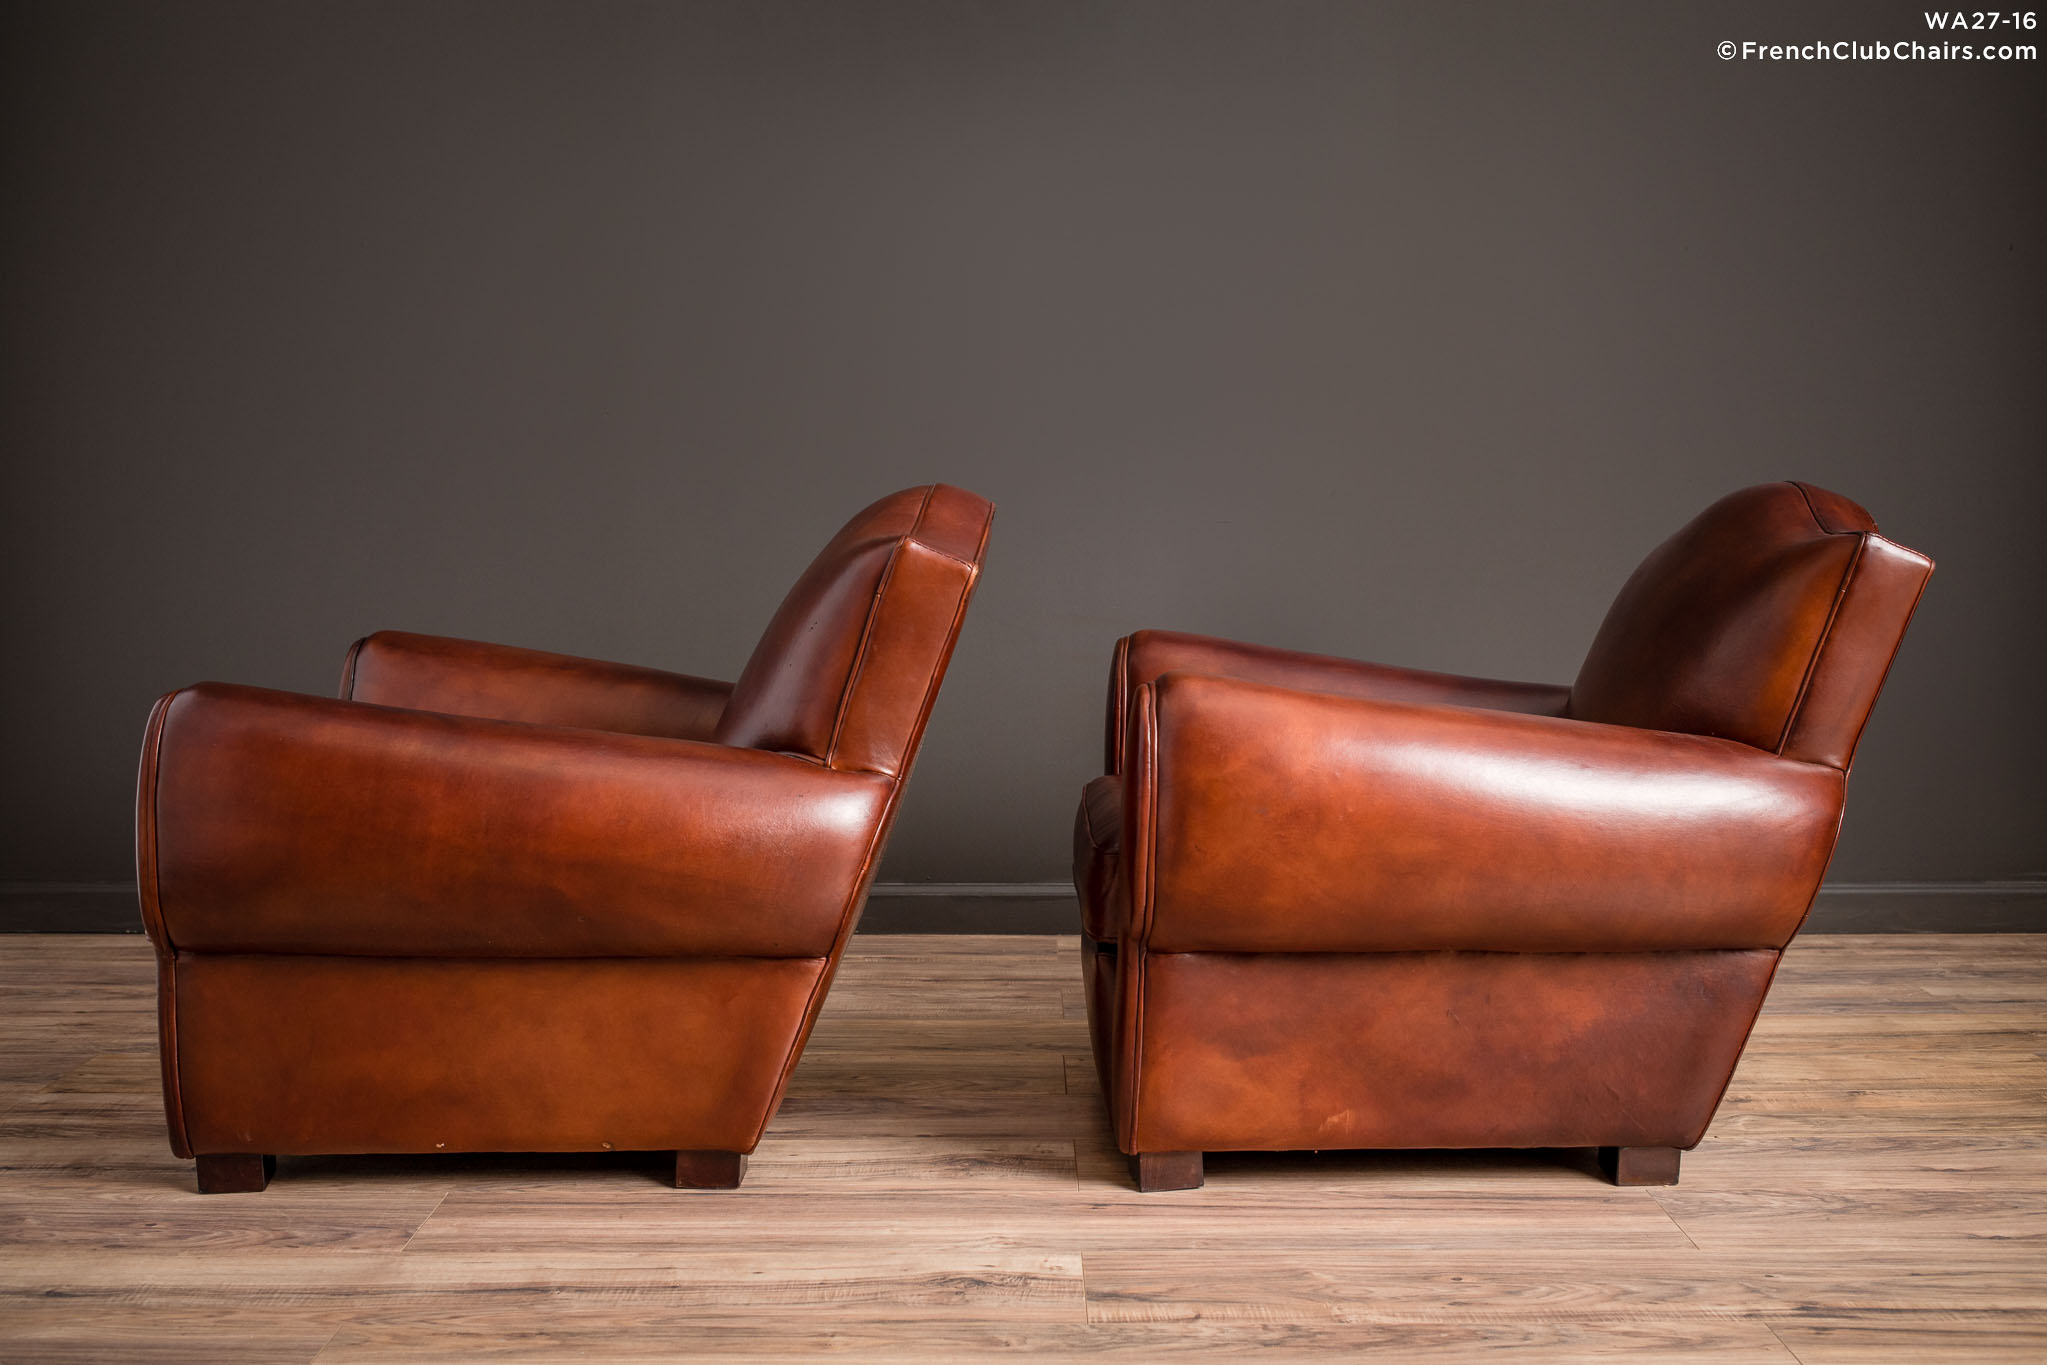 WA_27-16_Sweet_Petite_Burgundy_Mustache_Pair_R_4LT-v01-williams-antiks-leather-french-club-chair-wa_fcccom